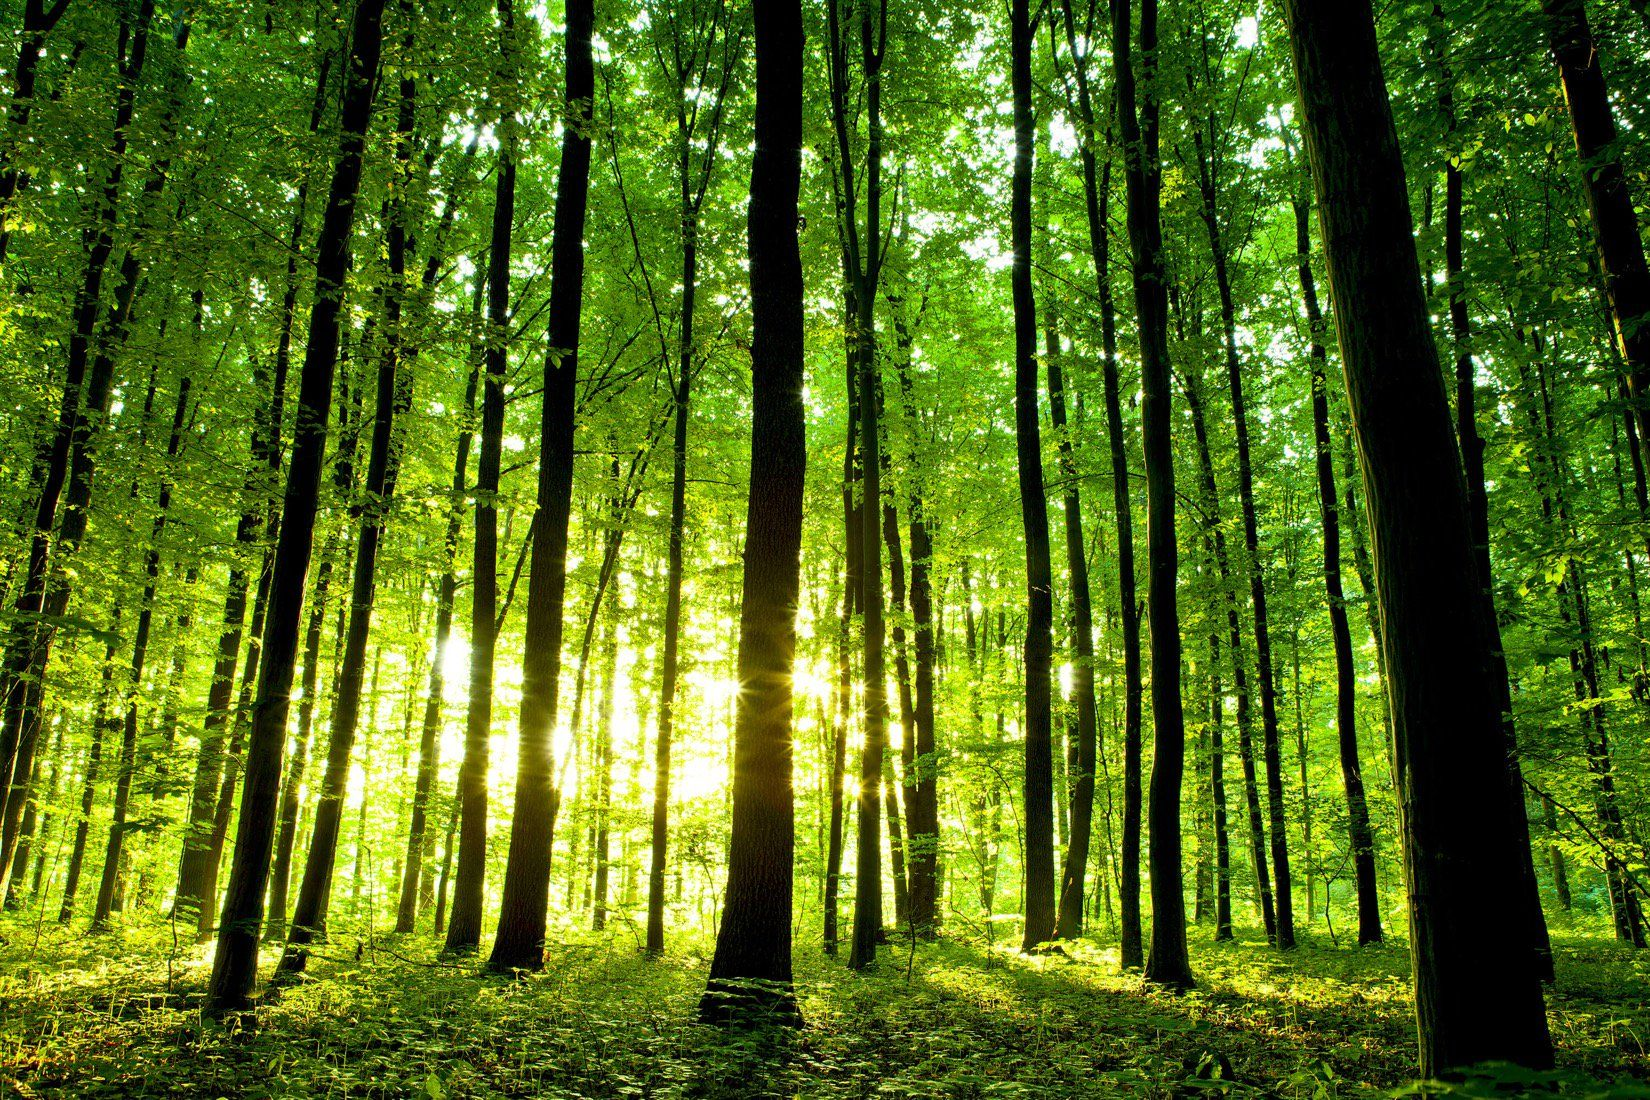 Light Forest Wallpaper Green Forest Style